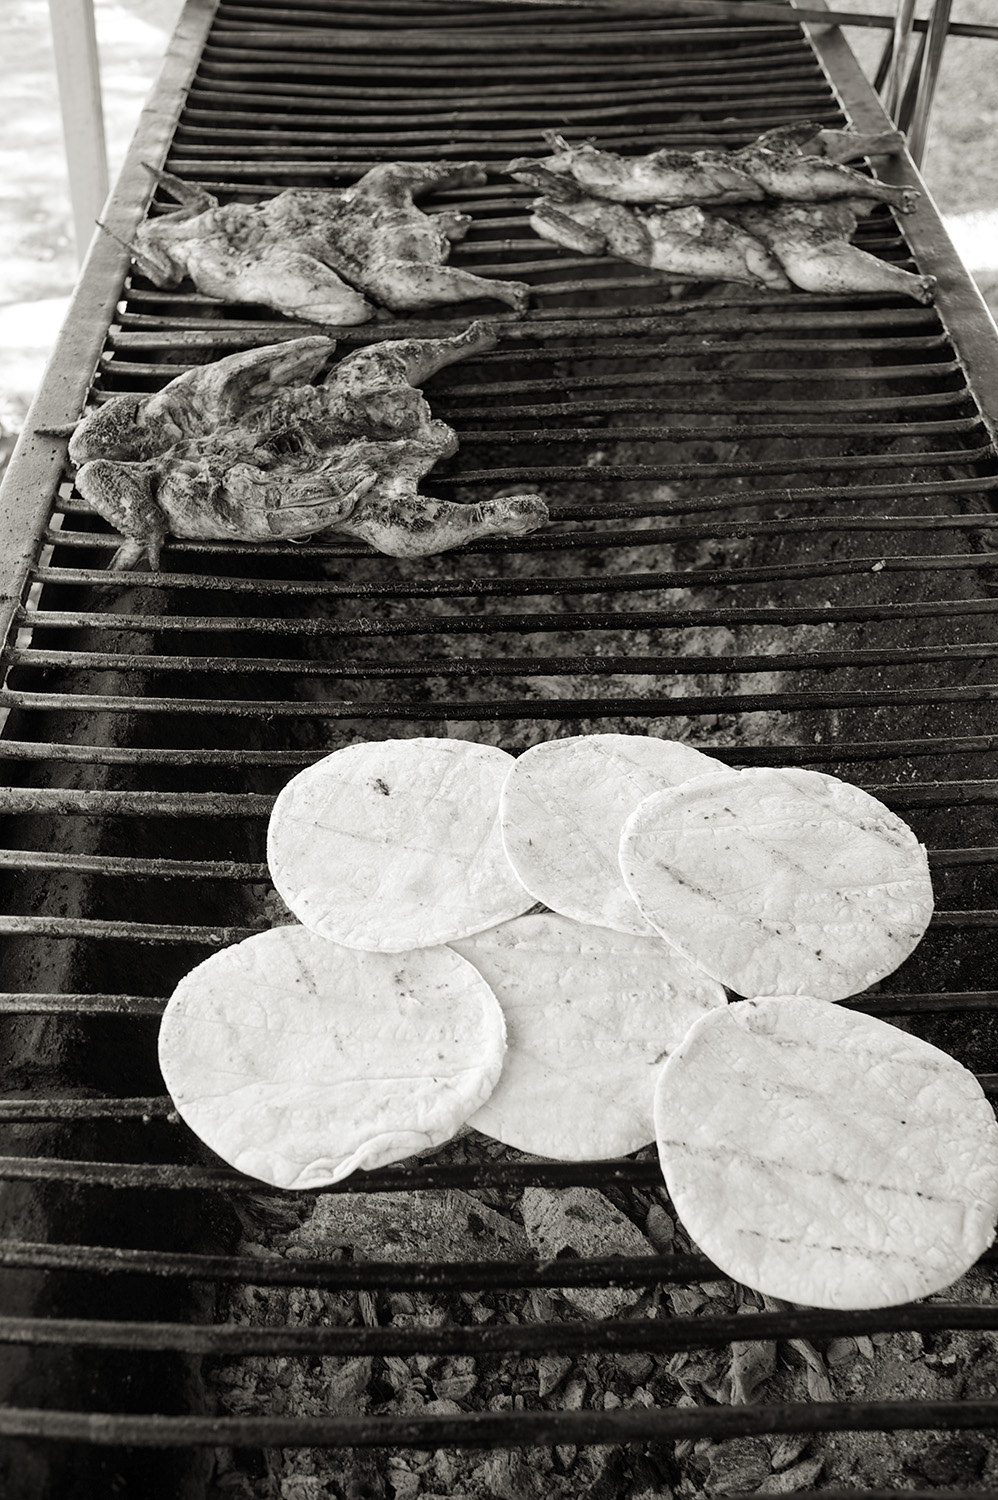 Street Food. Chicken & Corn Tortillas. Perfection.